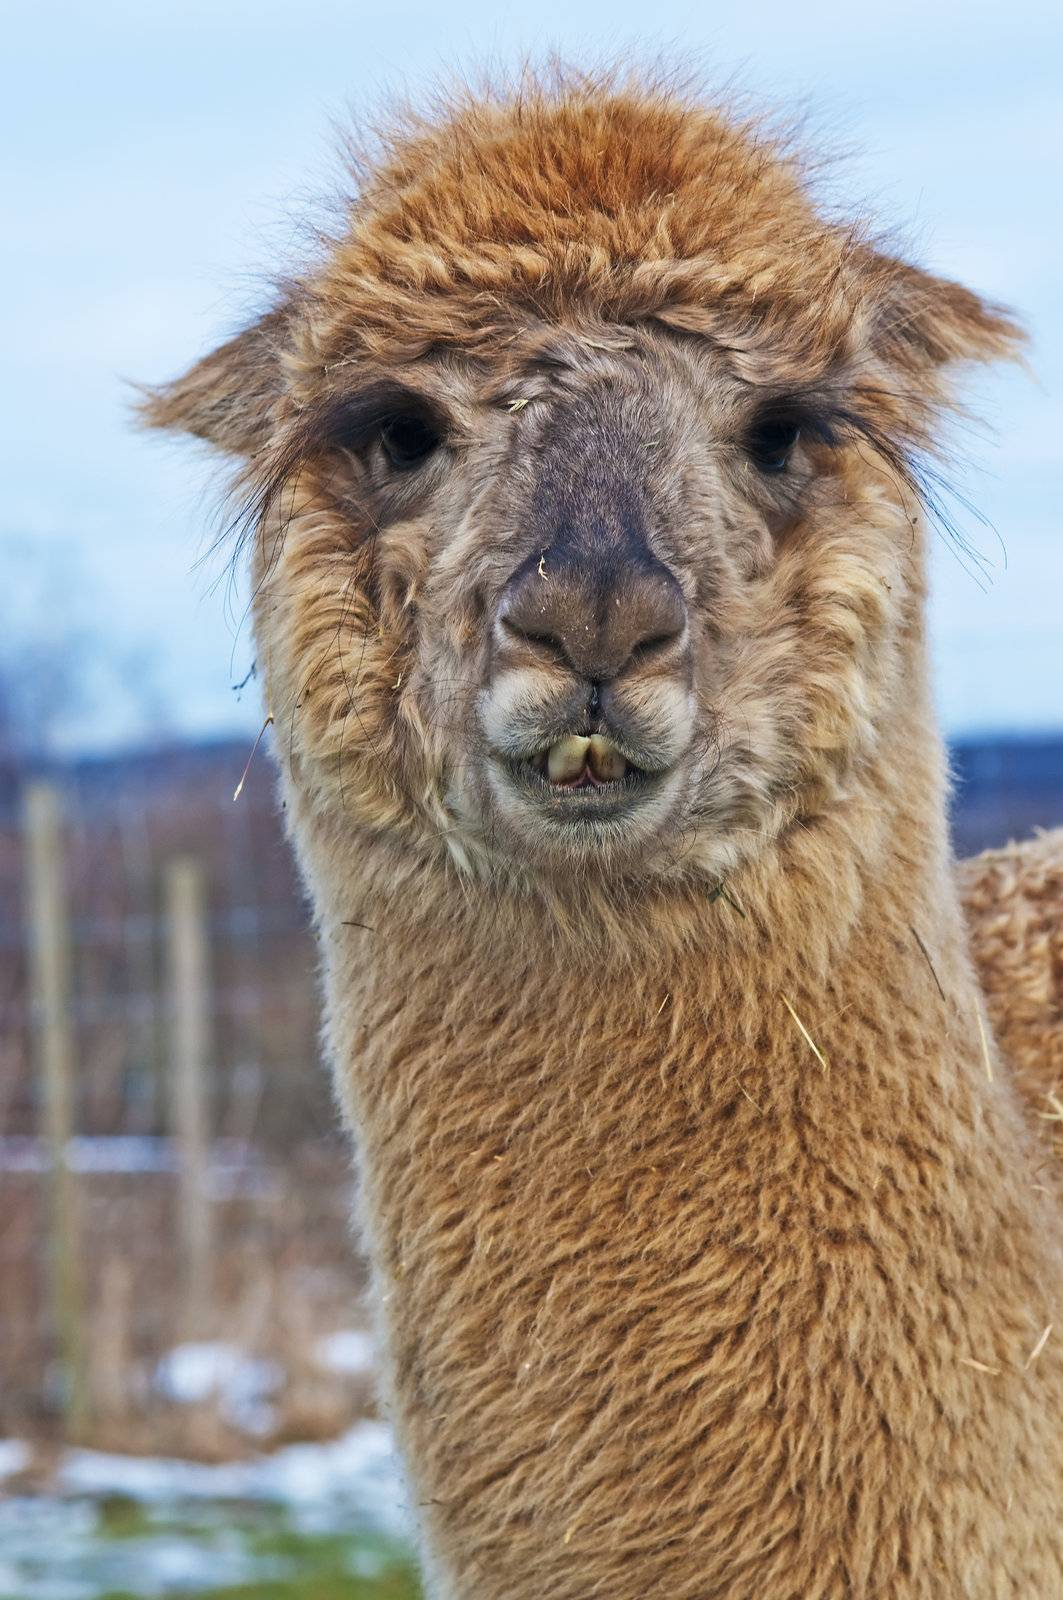 AAT, assisted animal therapy, adorable, alpaca, animal, brown - D5023846